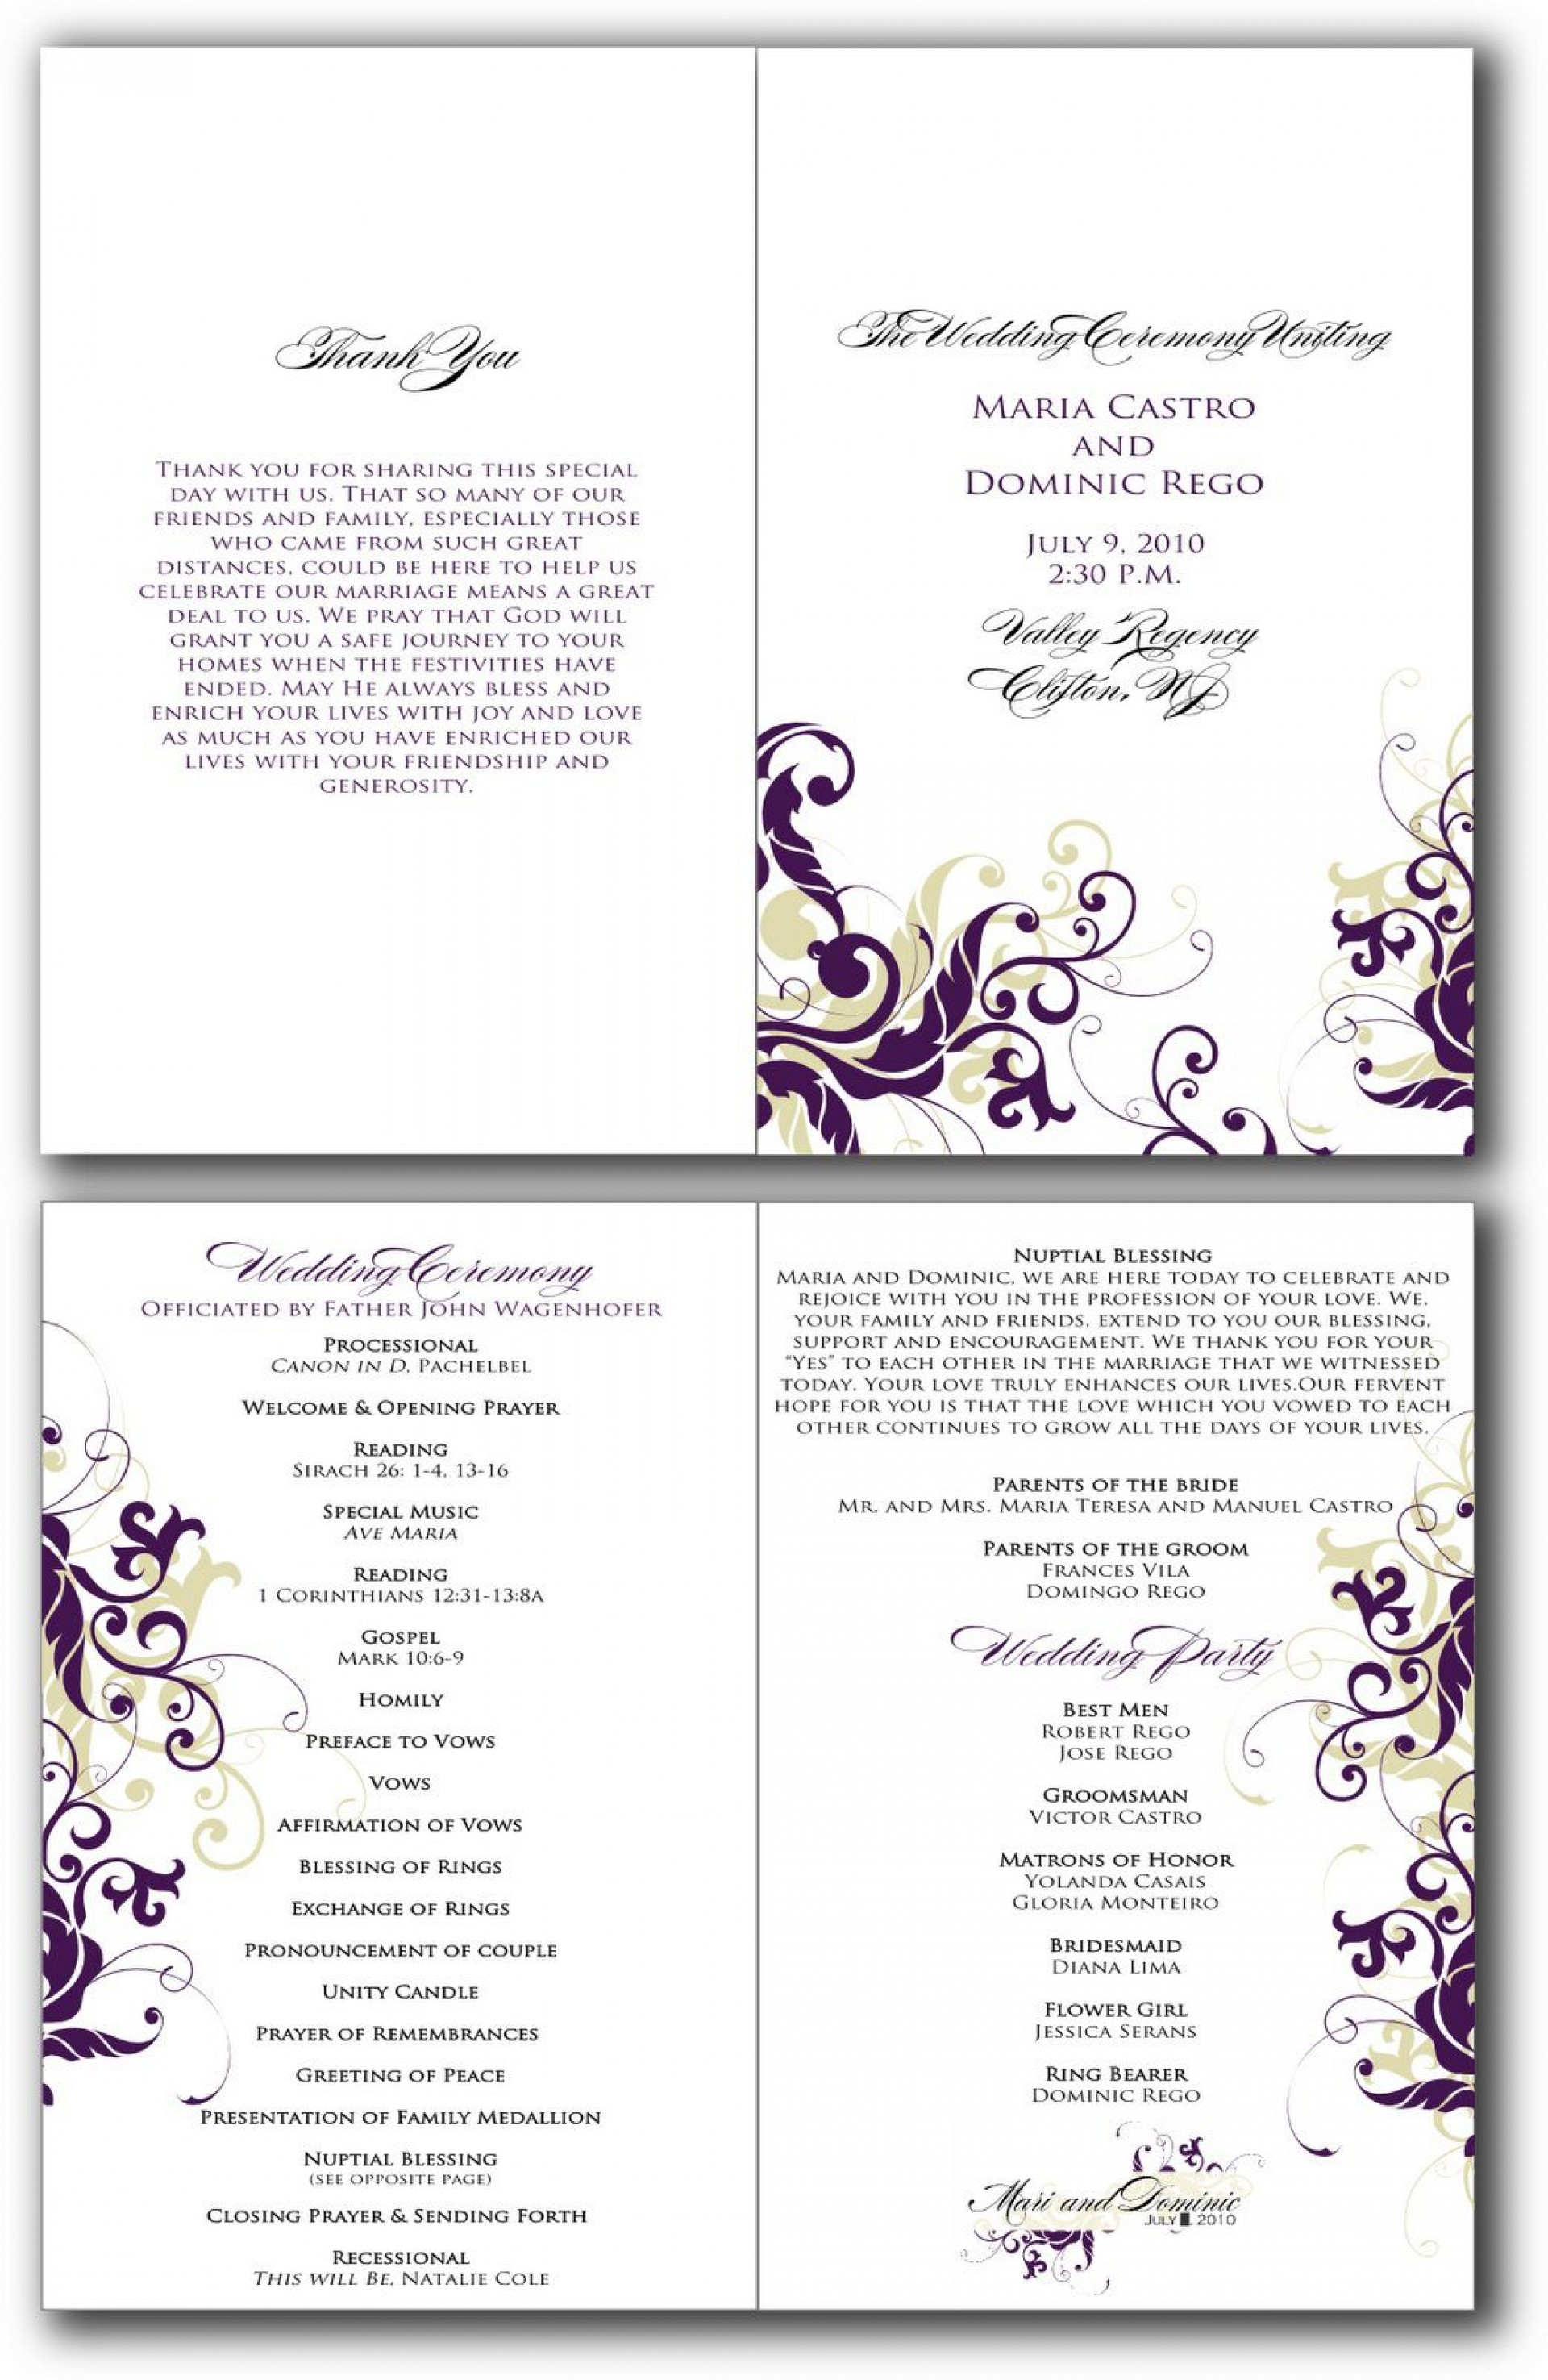 003 Surprising Free Downloadable Wedding Program Template Sample  Templates That Can Be Printed Printable Fall Reception1920